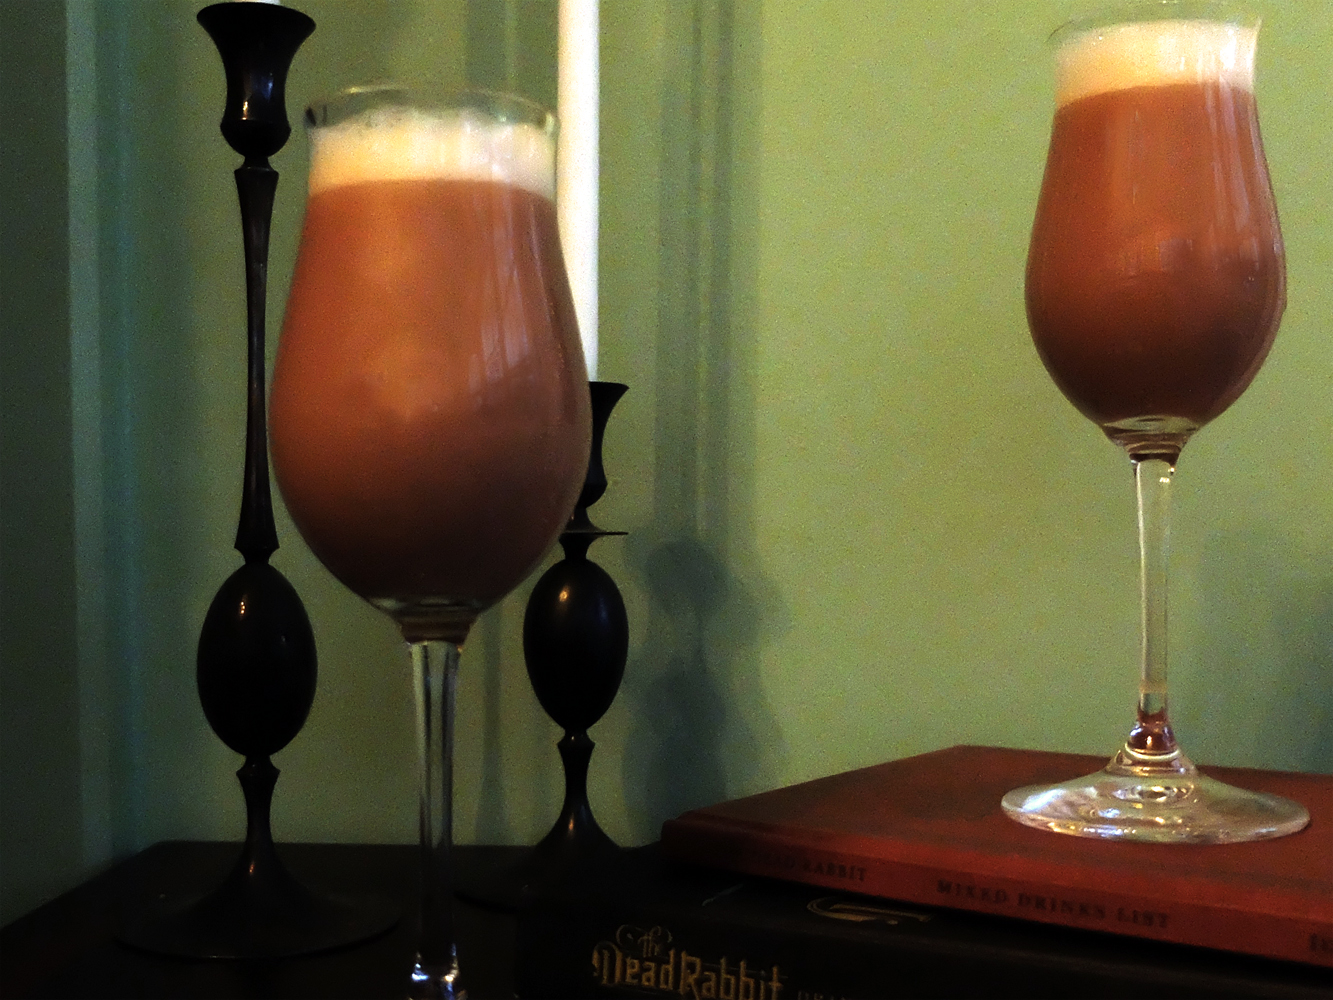 Mulled Egg-Wine for two, served in sherry glasses.